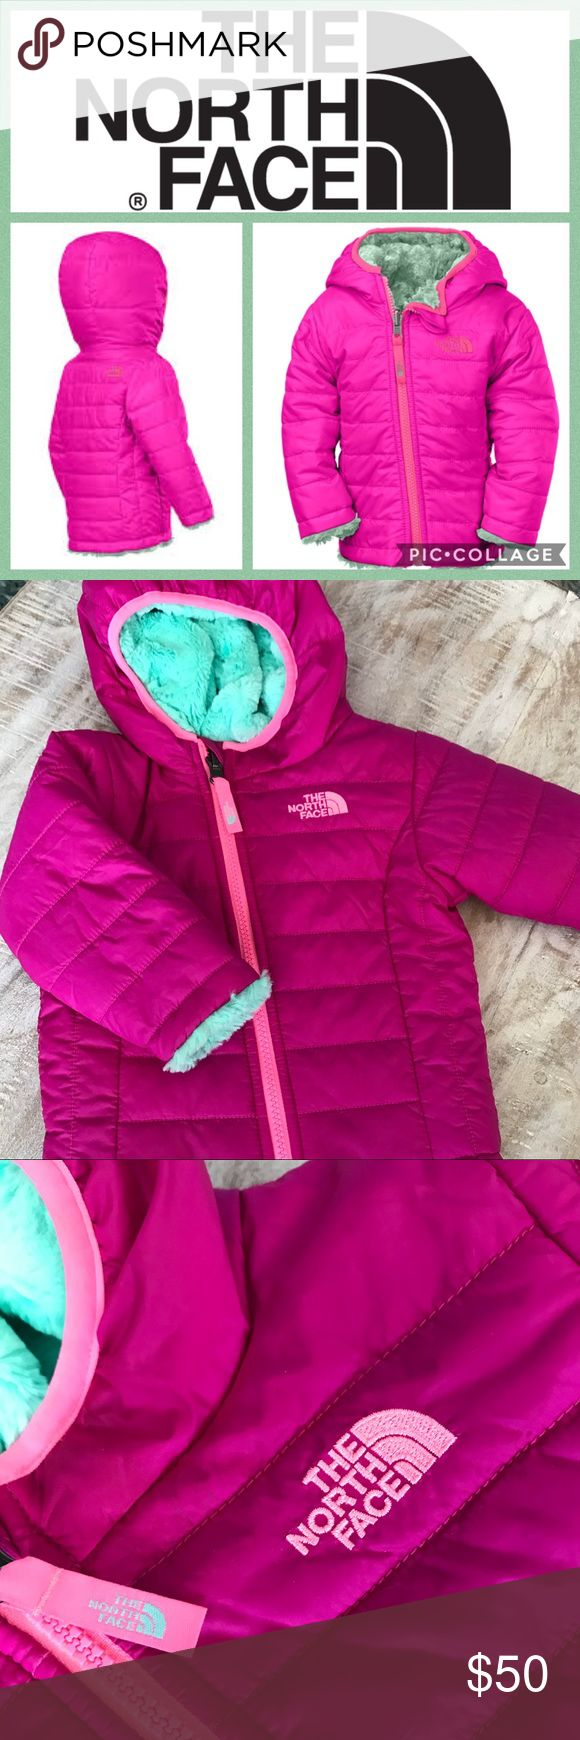 ❄️KIDS!! North Face Infant Mossbud Swirl Jacket A reversible jacket that doubles the options for everyday protection, featuring a quilted taffeta exterior with lightweight insulation that reverses to reveal soft, Silken fleece. Taffeta is treated with a DWR (durable water repellent) finish to keep her dry during light rain showers Fixed hood Horizontal quilting on taffeta body Welt hand pockets  Embroidered logo on left chest and back right shoulder of poly/taffeta side and right chest of…